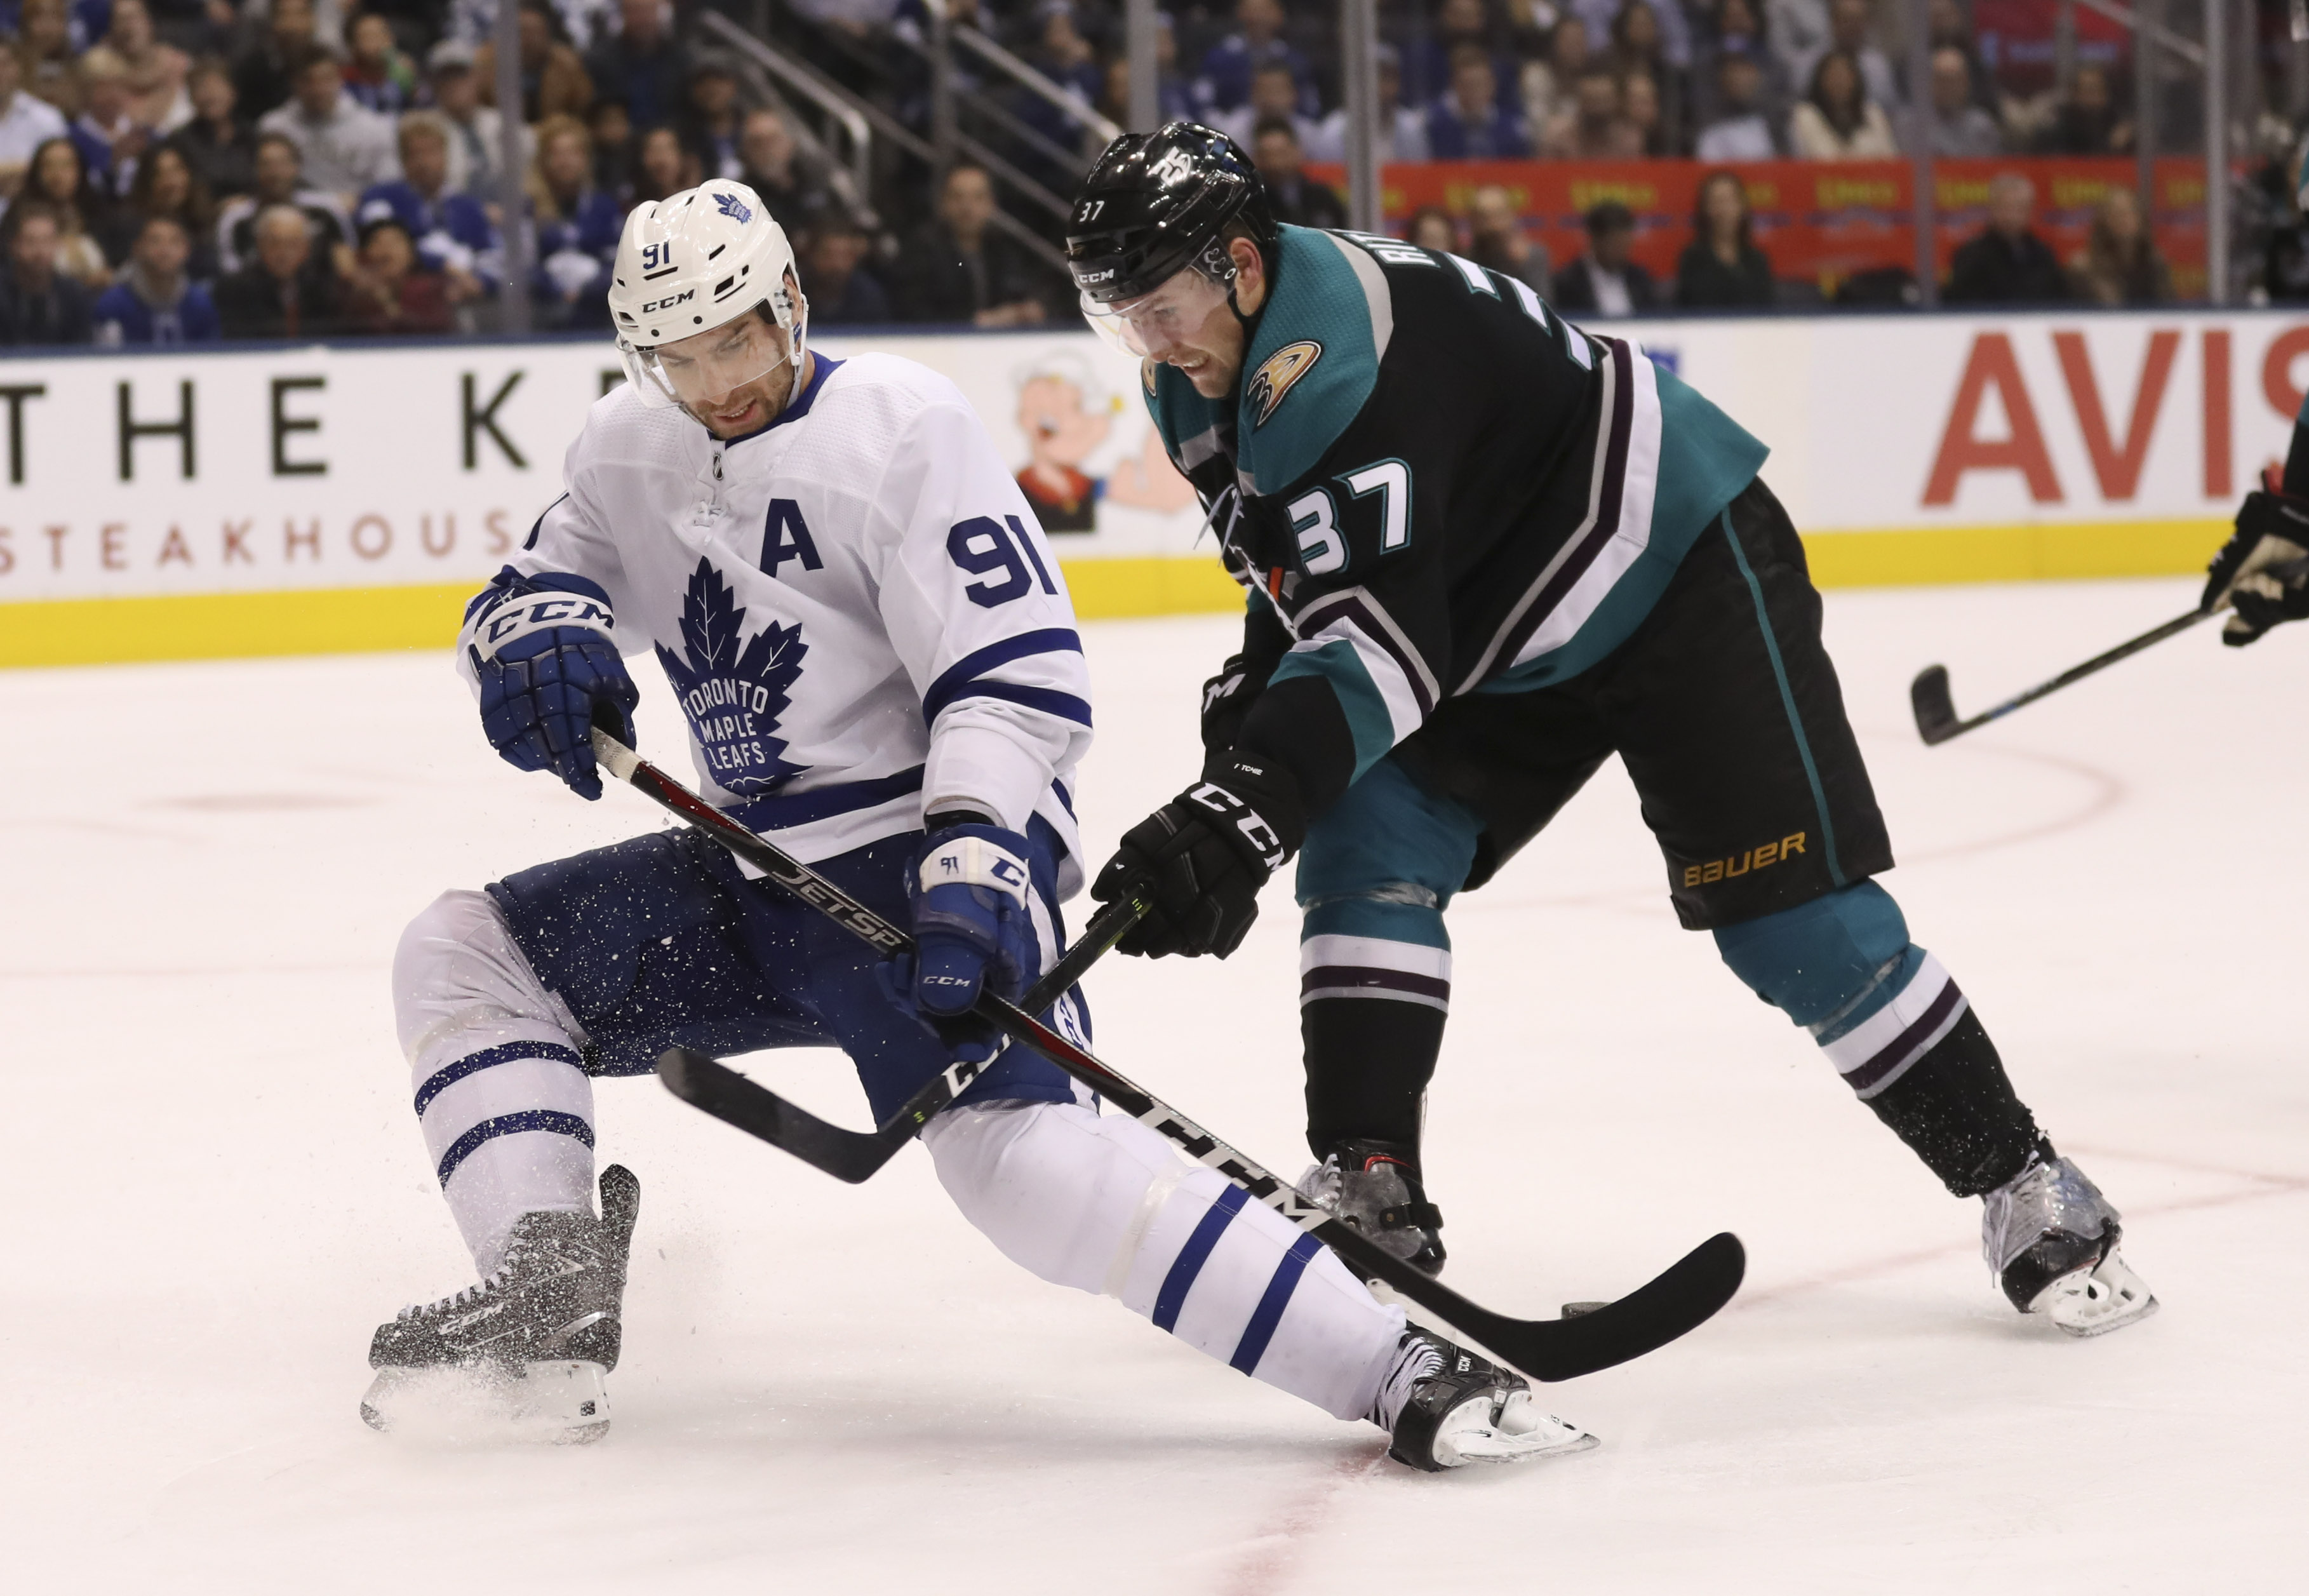 The Toronto Maple Leafs played the Anaheim Ducks at the Scotiabank Arena